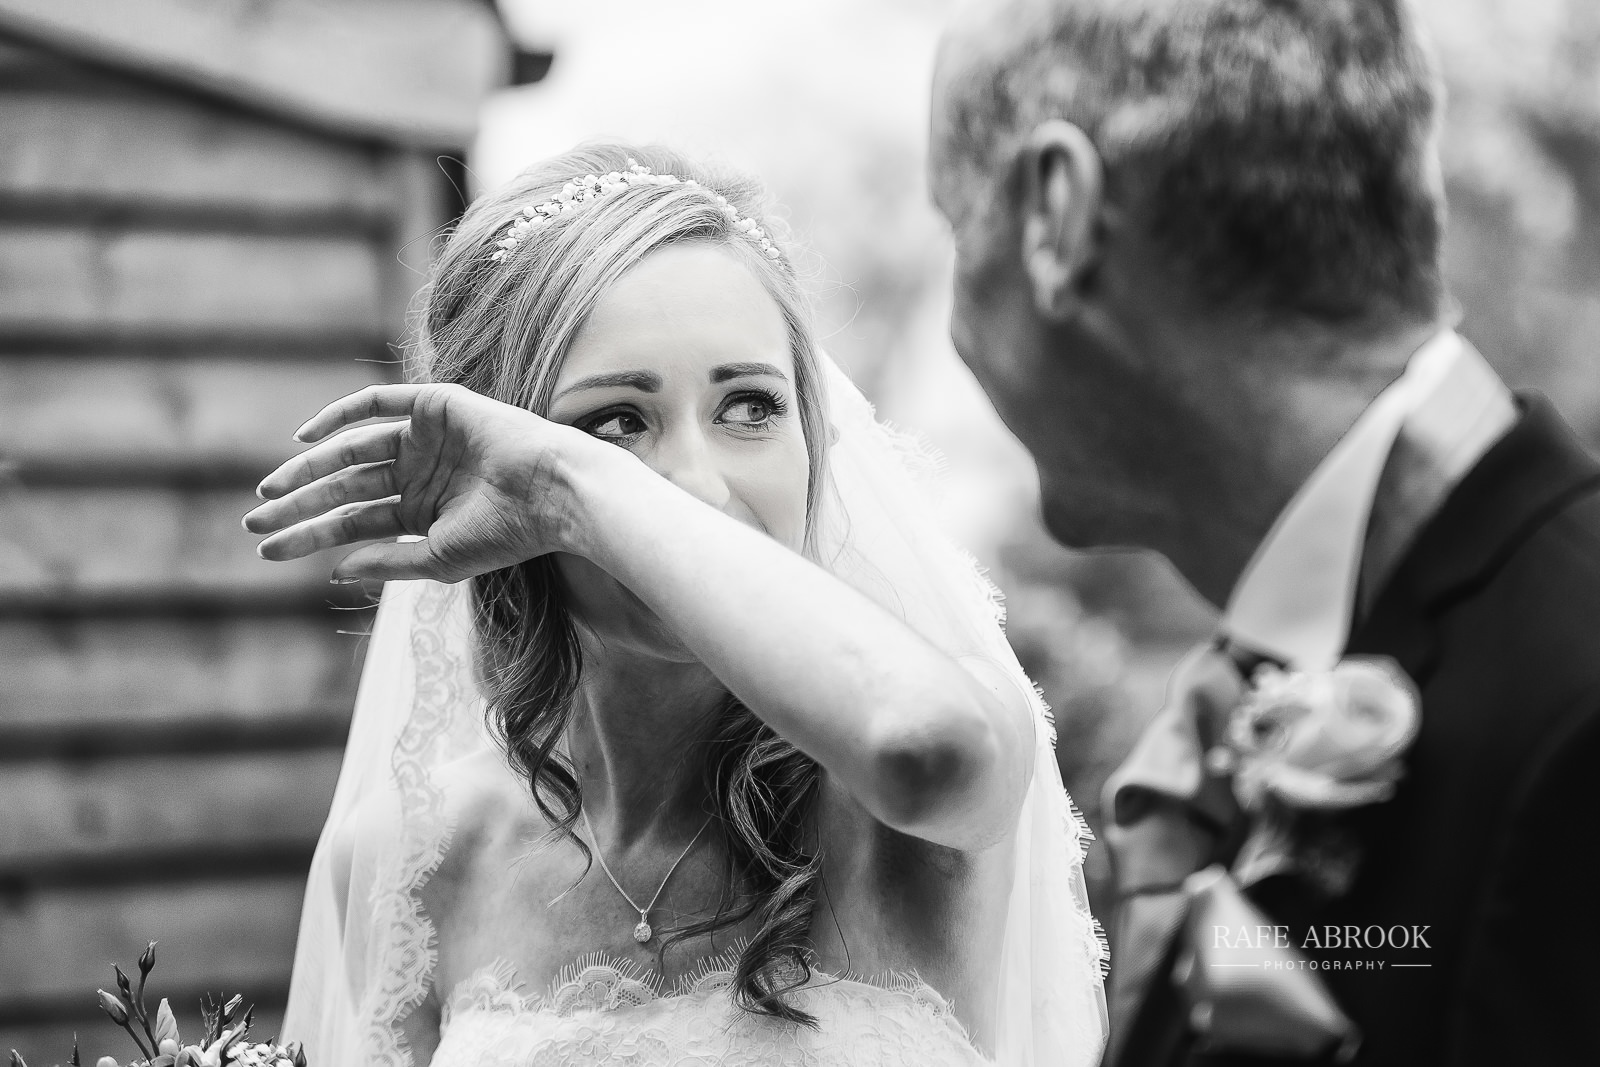 bassmead manor barns wedding st neots cambridgeshire hertfordshire wedding photographer rafe abrook-1307.jpg